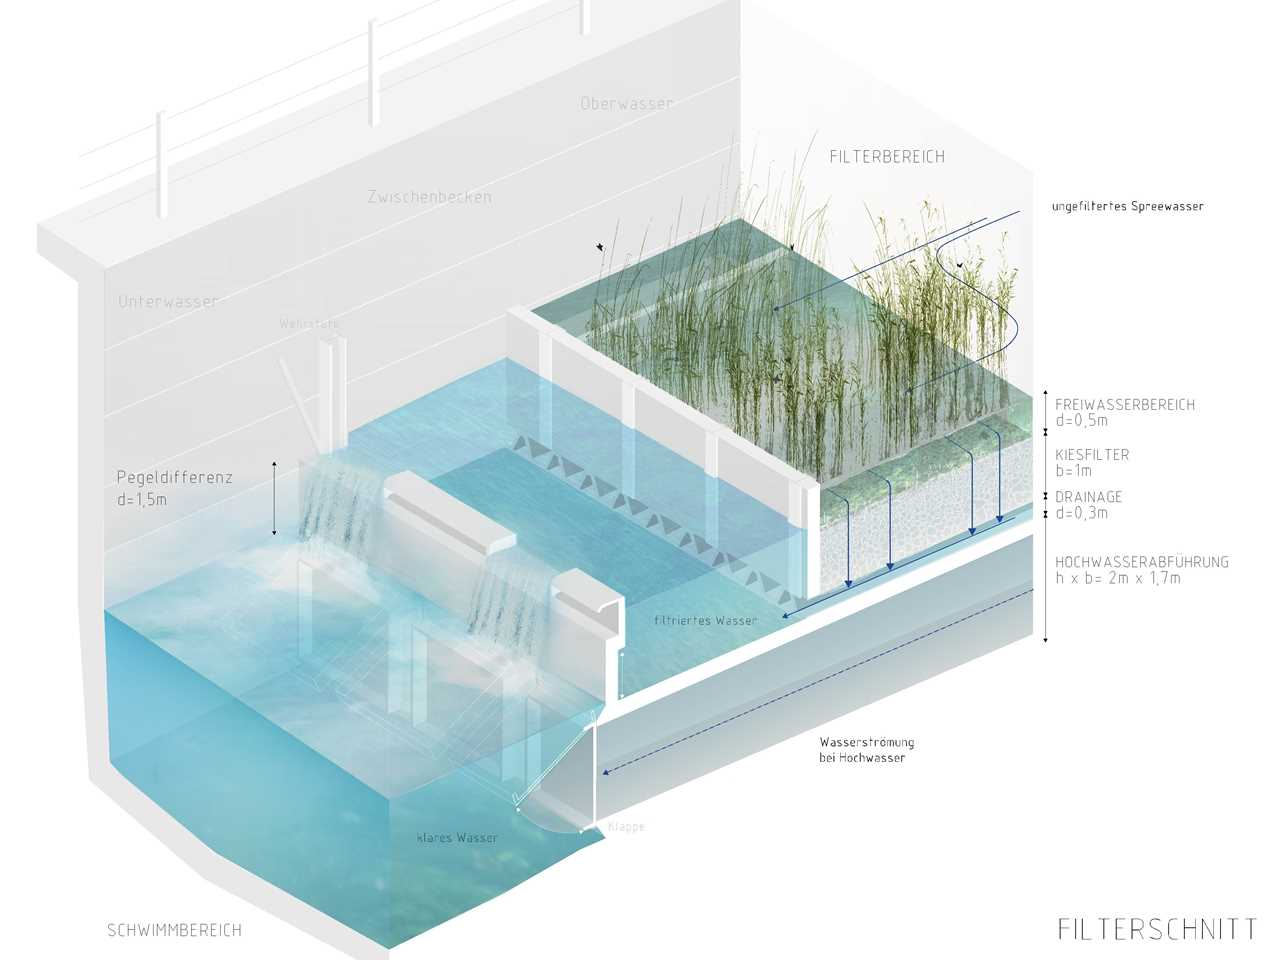 Project update October 2016 – Flussbad: Urban renewal and swimming-pool precinct, Berlin, Germany